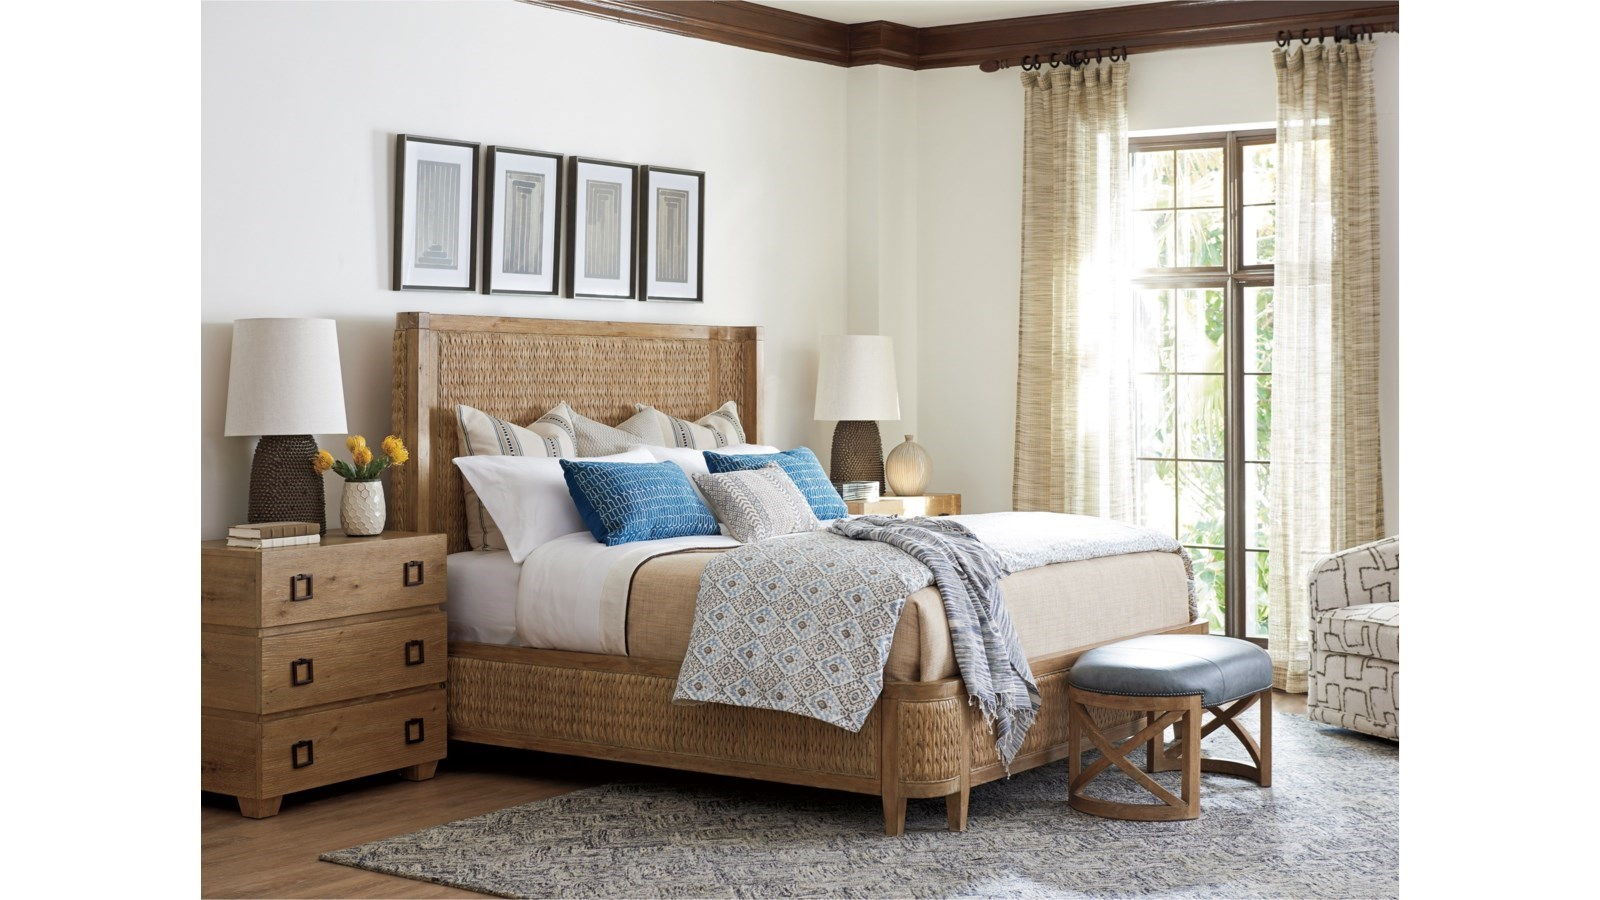 bedroom with natural bed frame and wooden nightstand